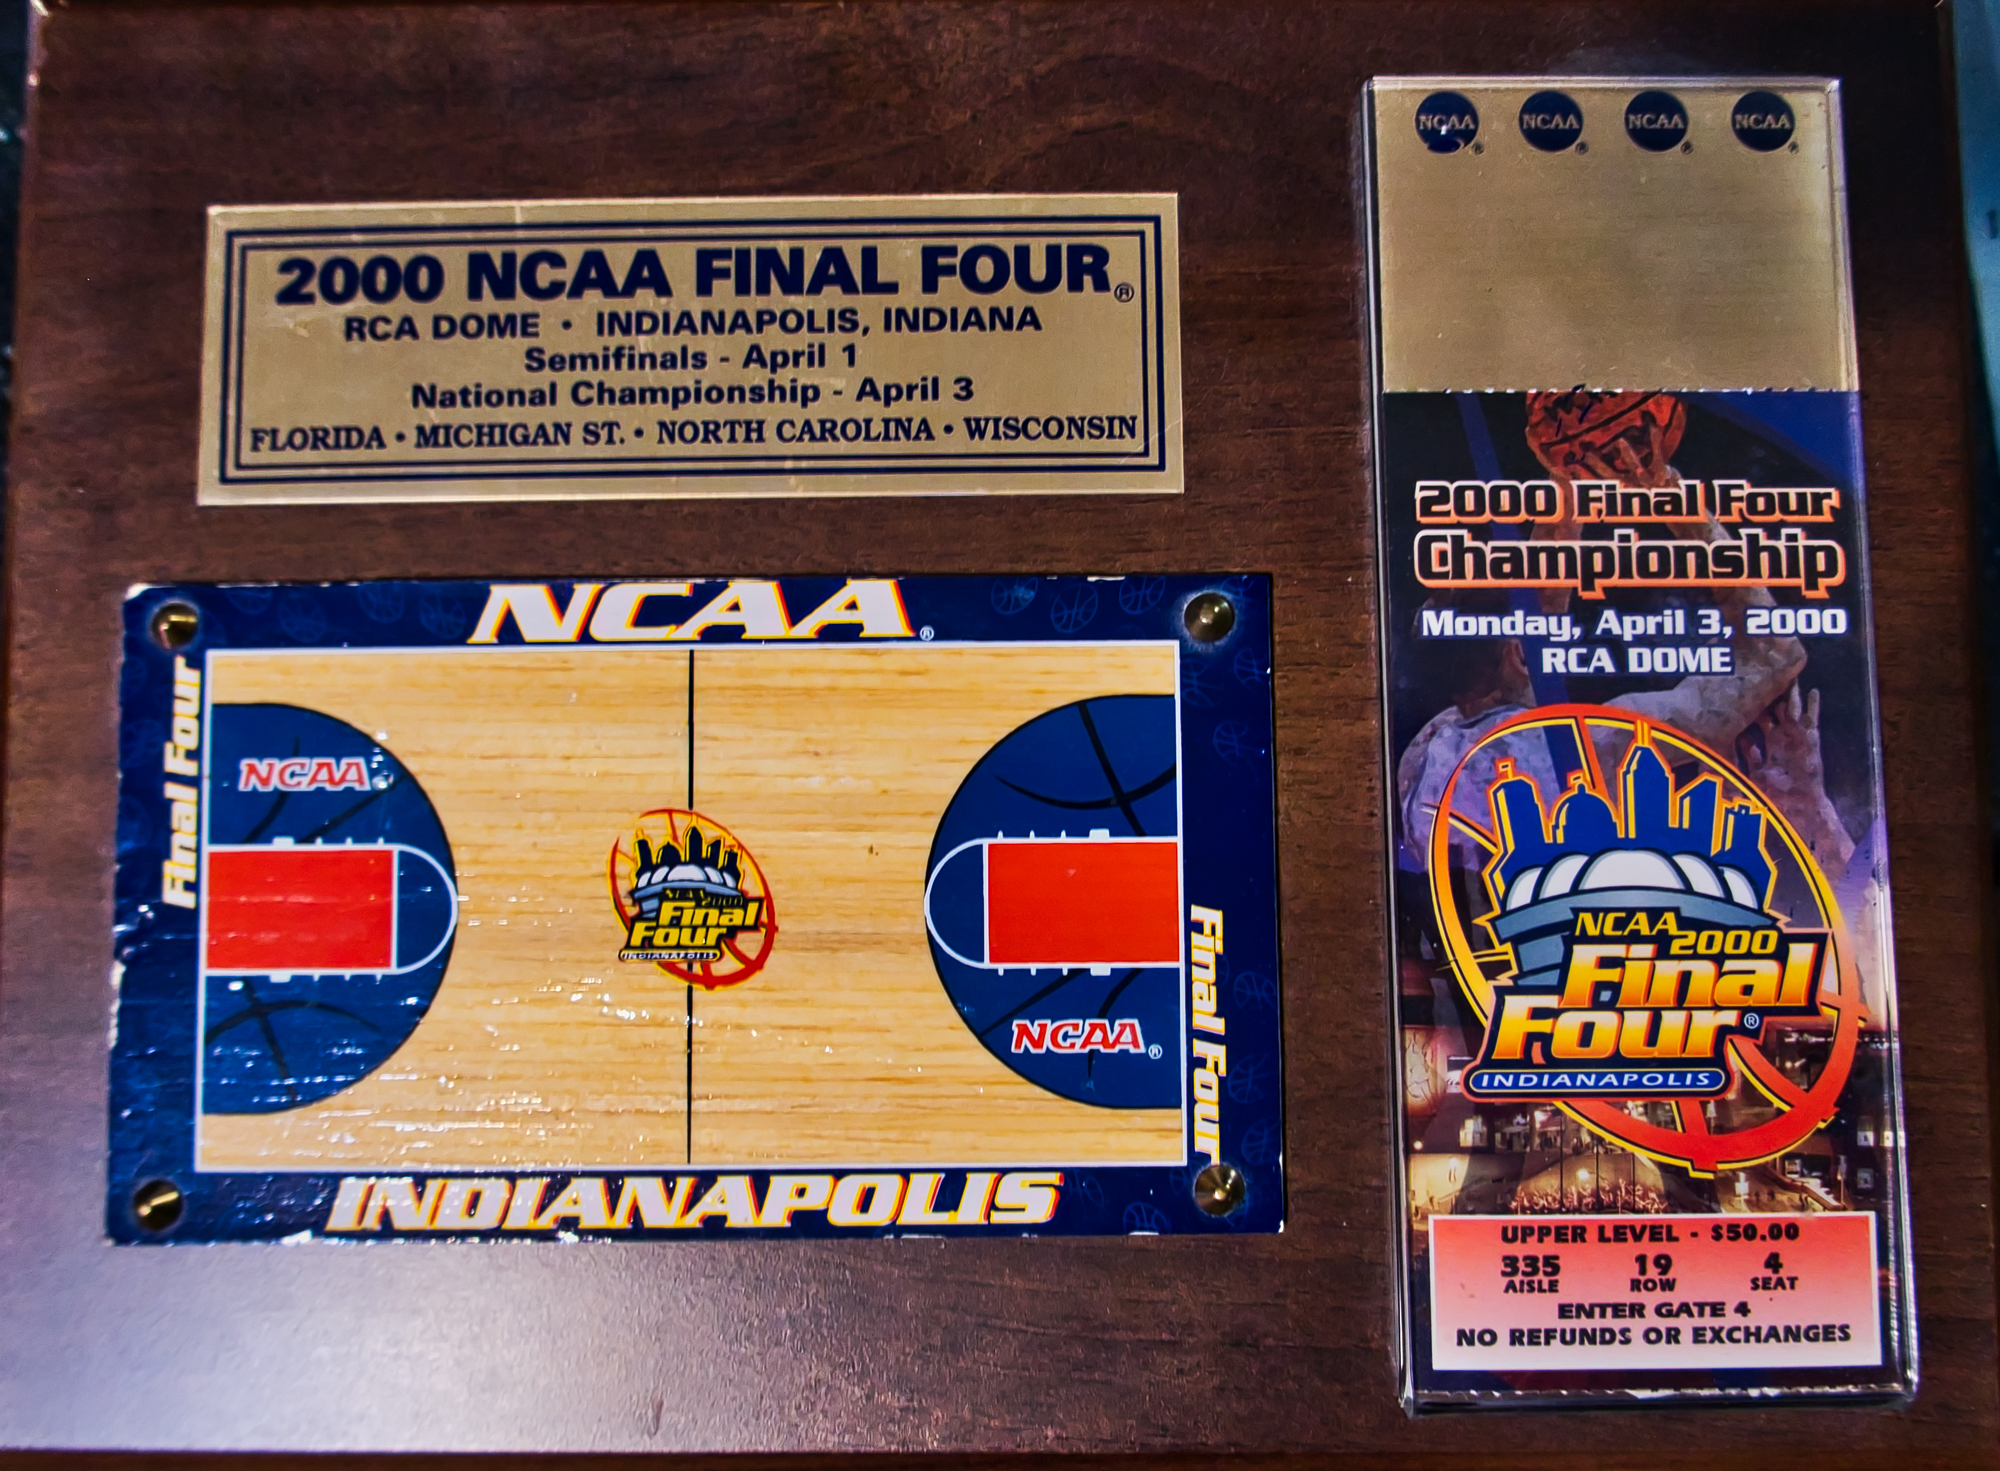 2000 Final Four Plaque with Ticket